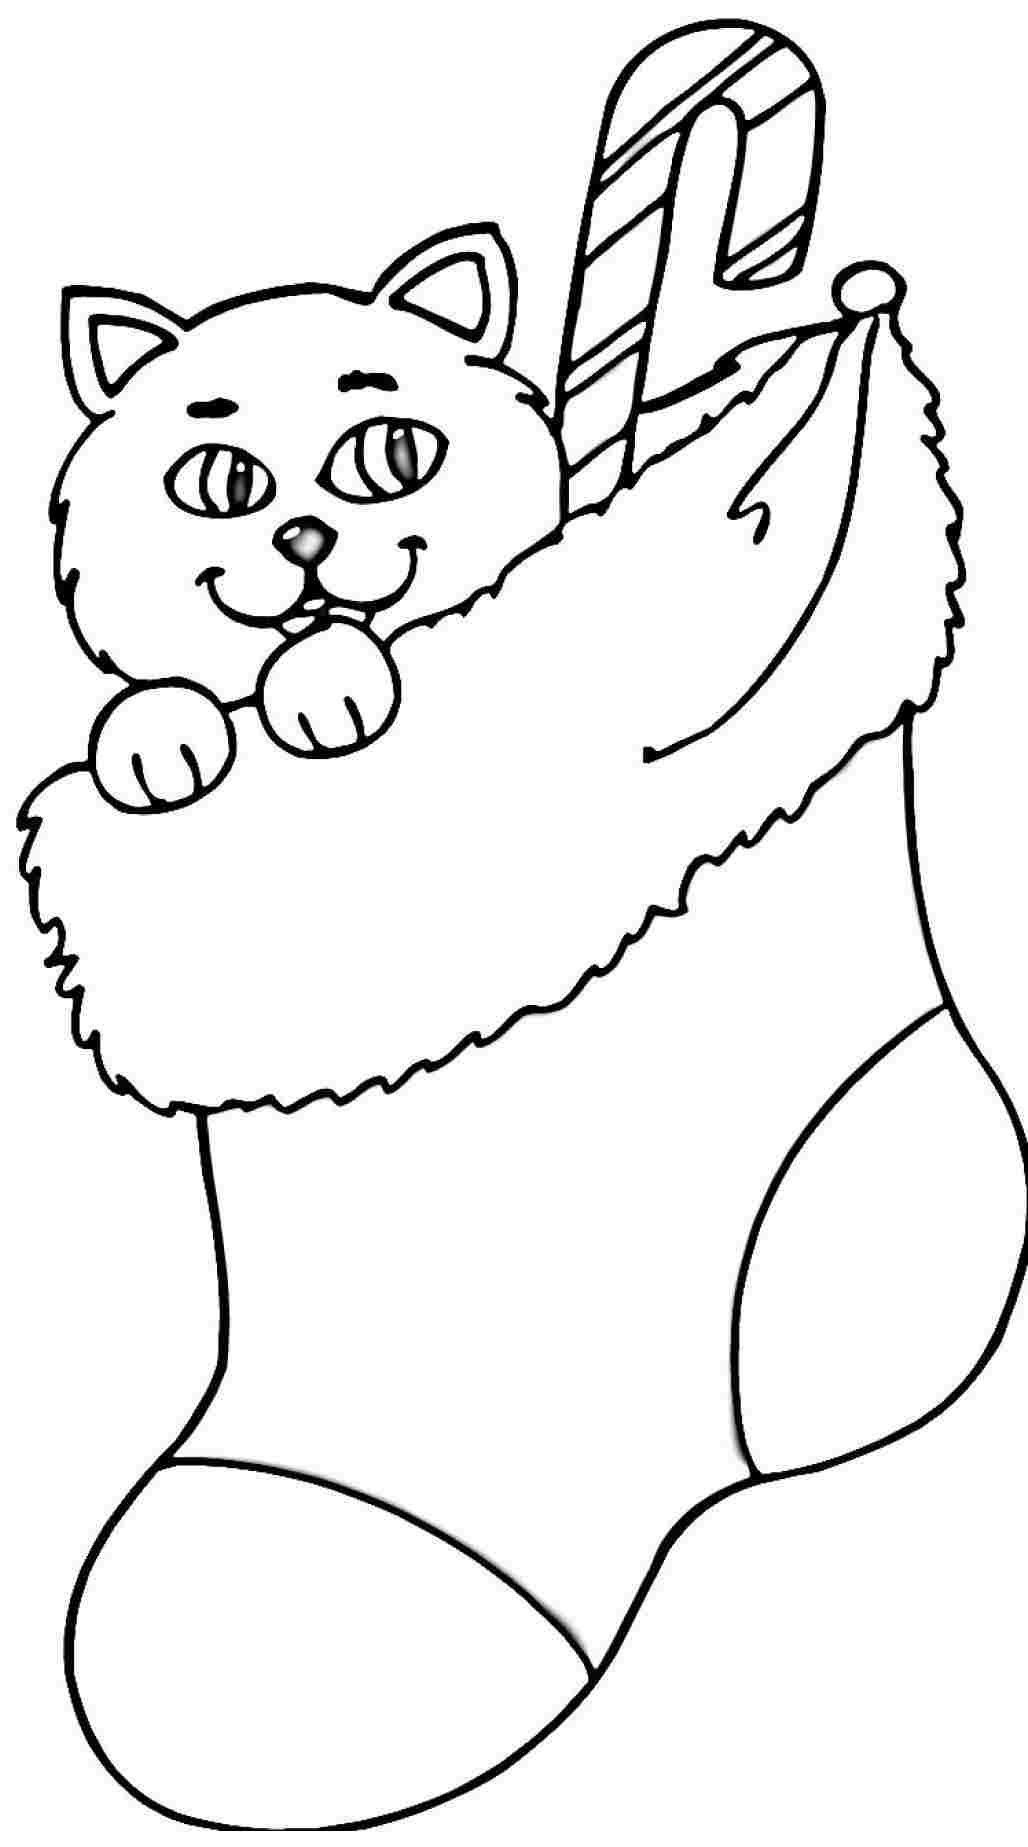 Dltk Printable Christmas Coloring Pages With Stocking Page On Archives And Auto In